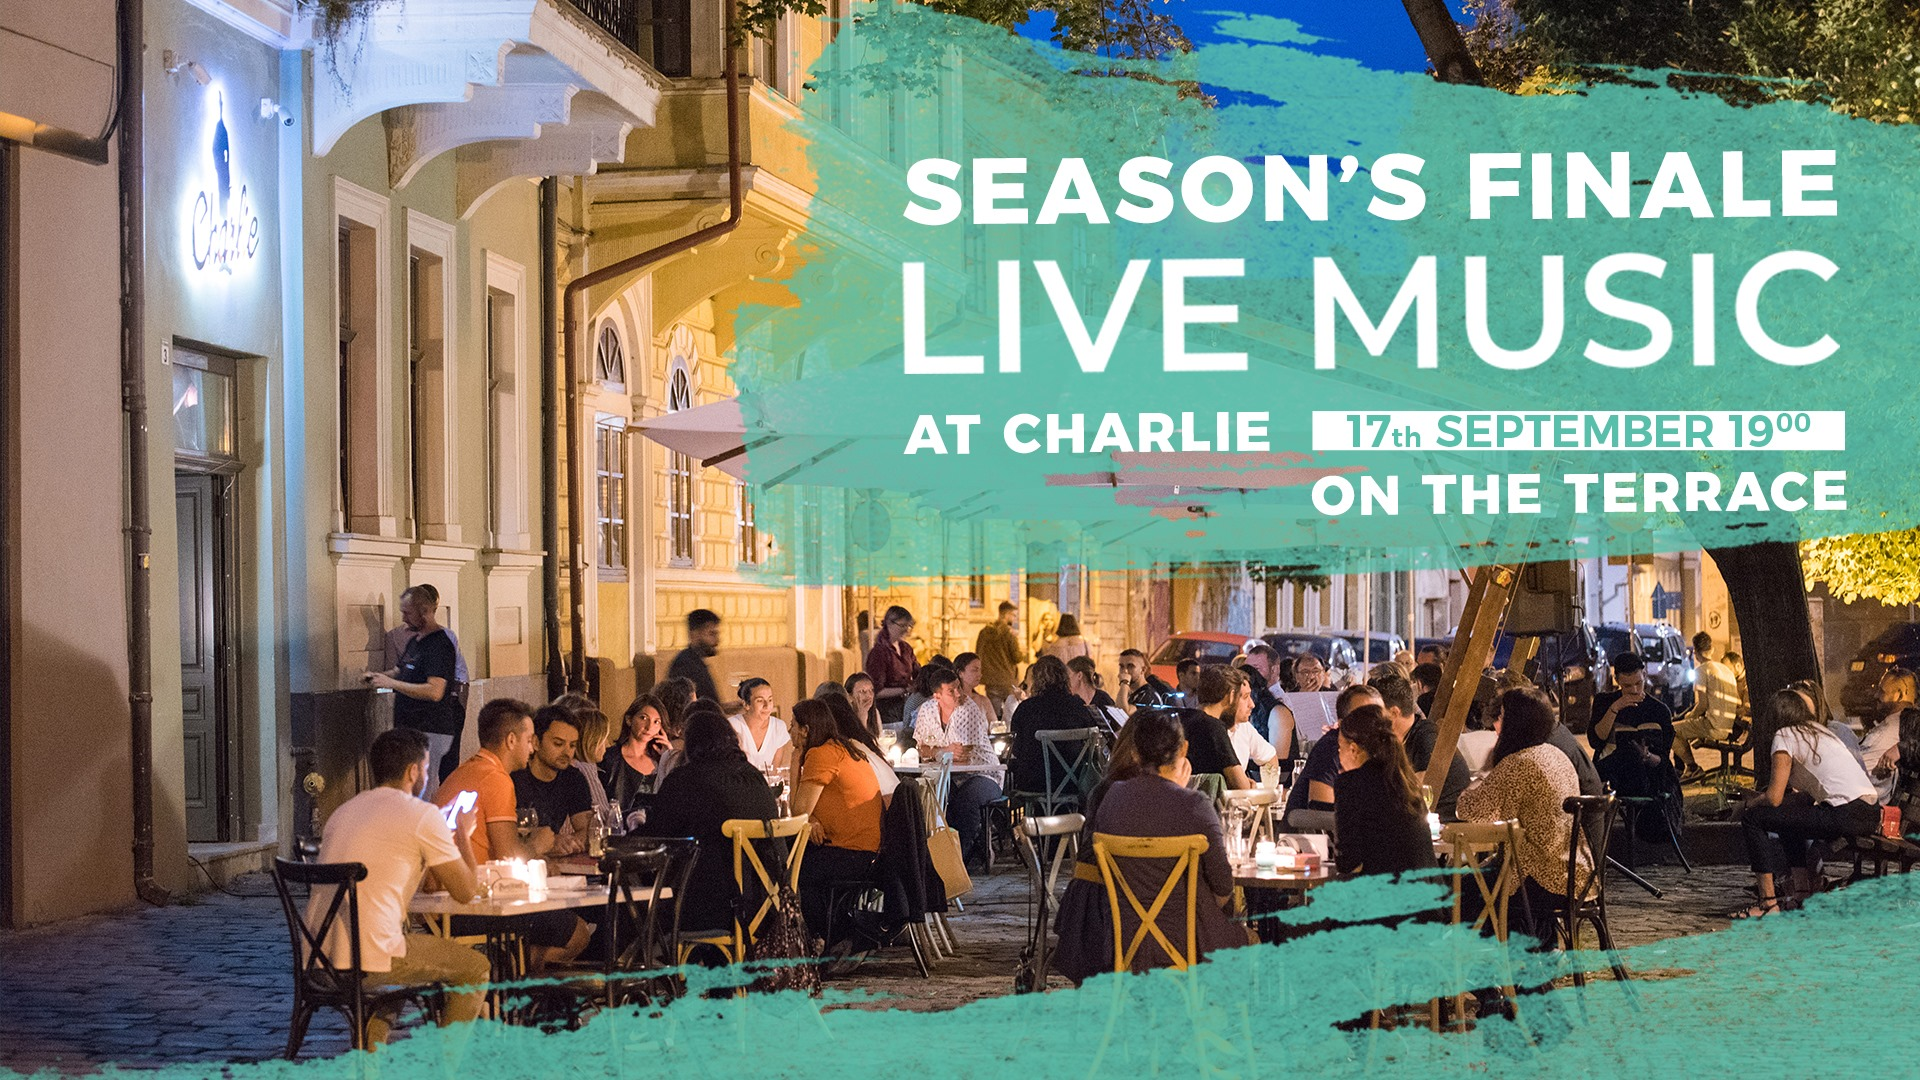 Season's Finale Live Music @ Charlie